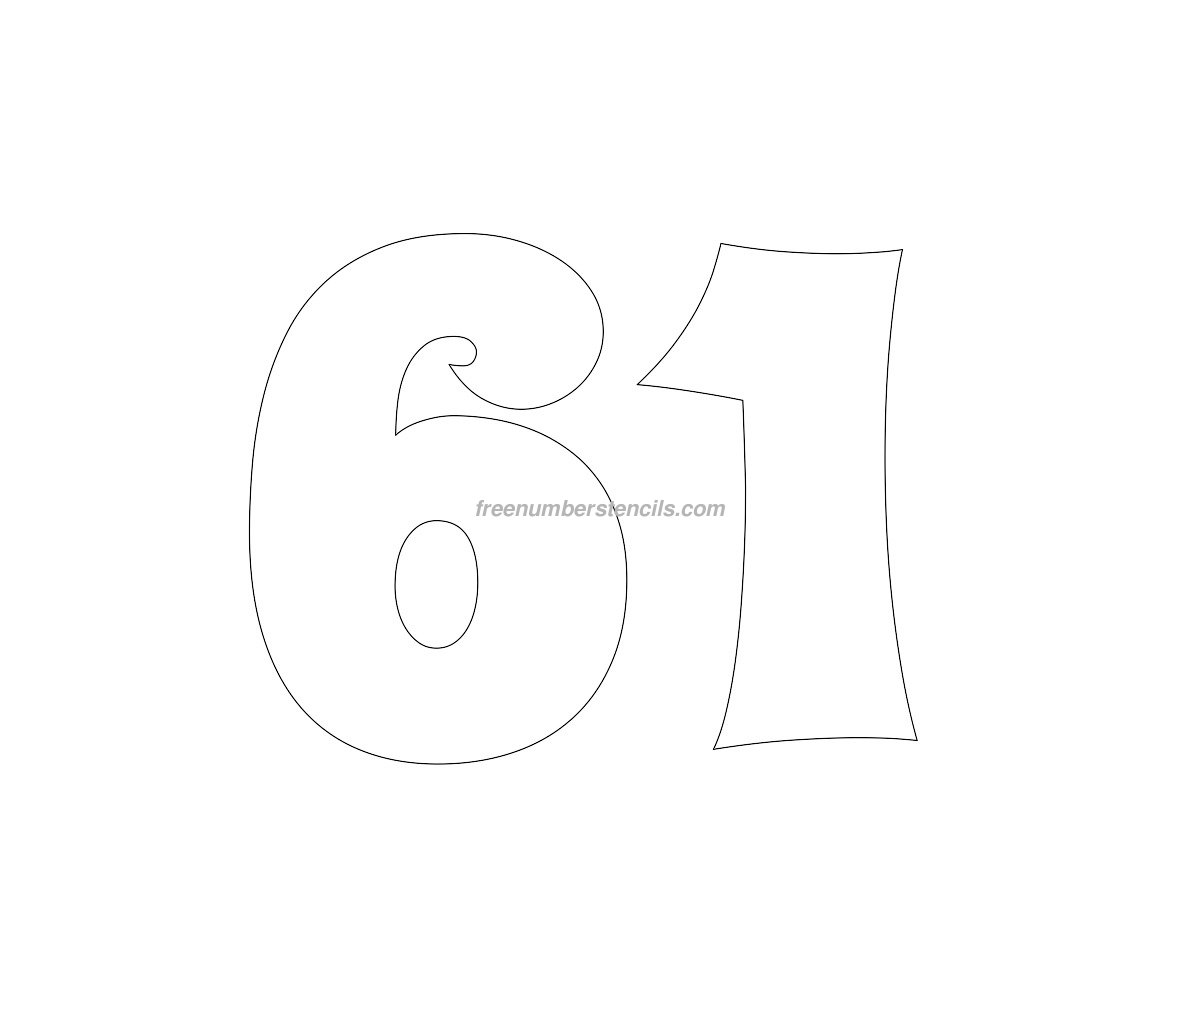 stencil-groovy-number-61